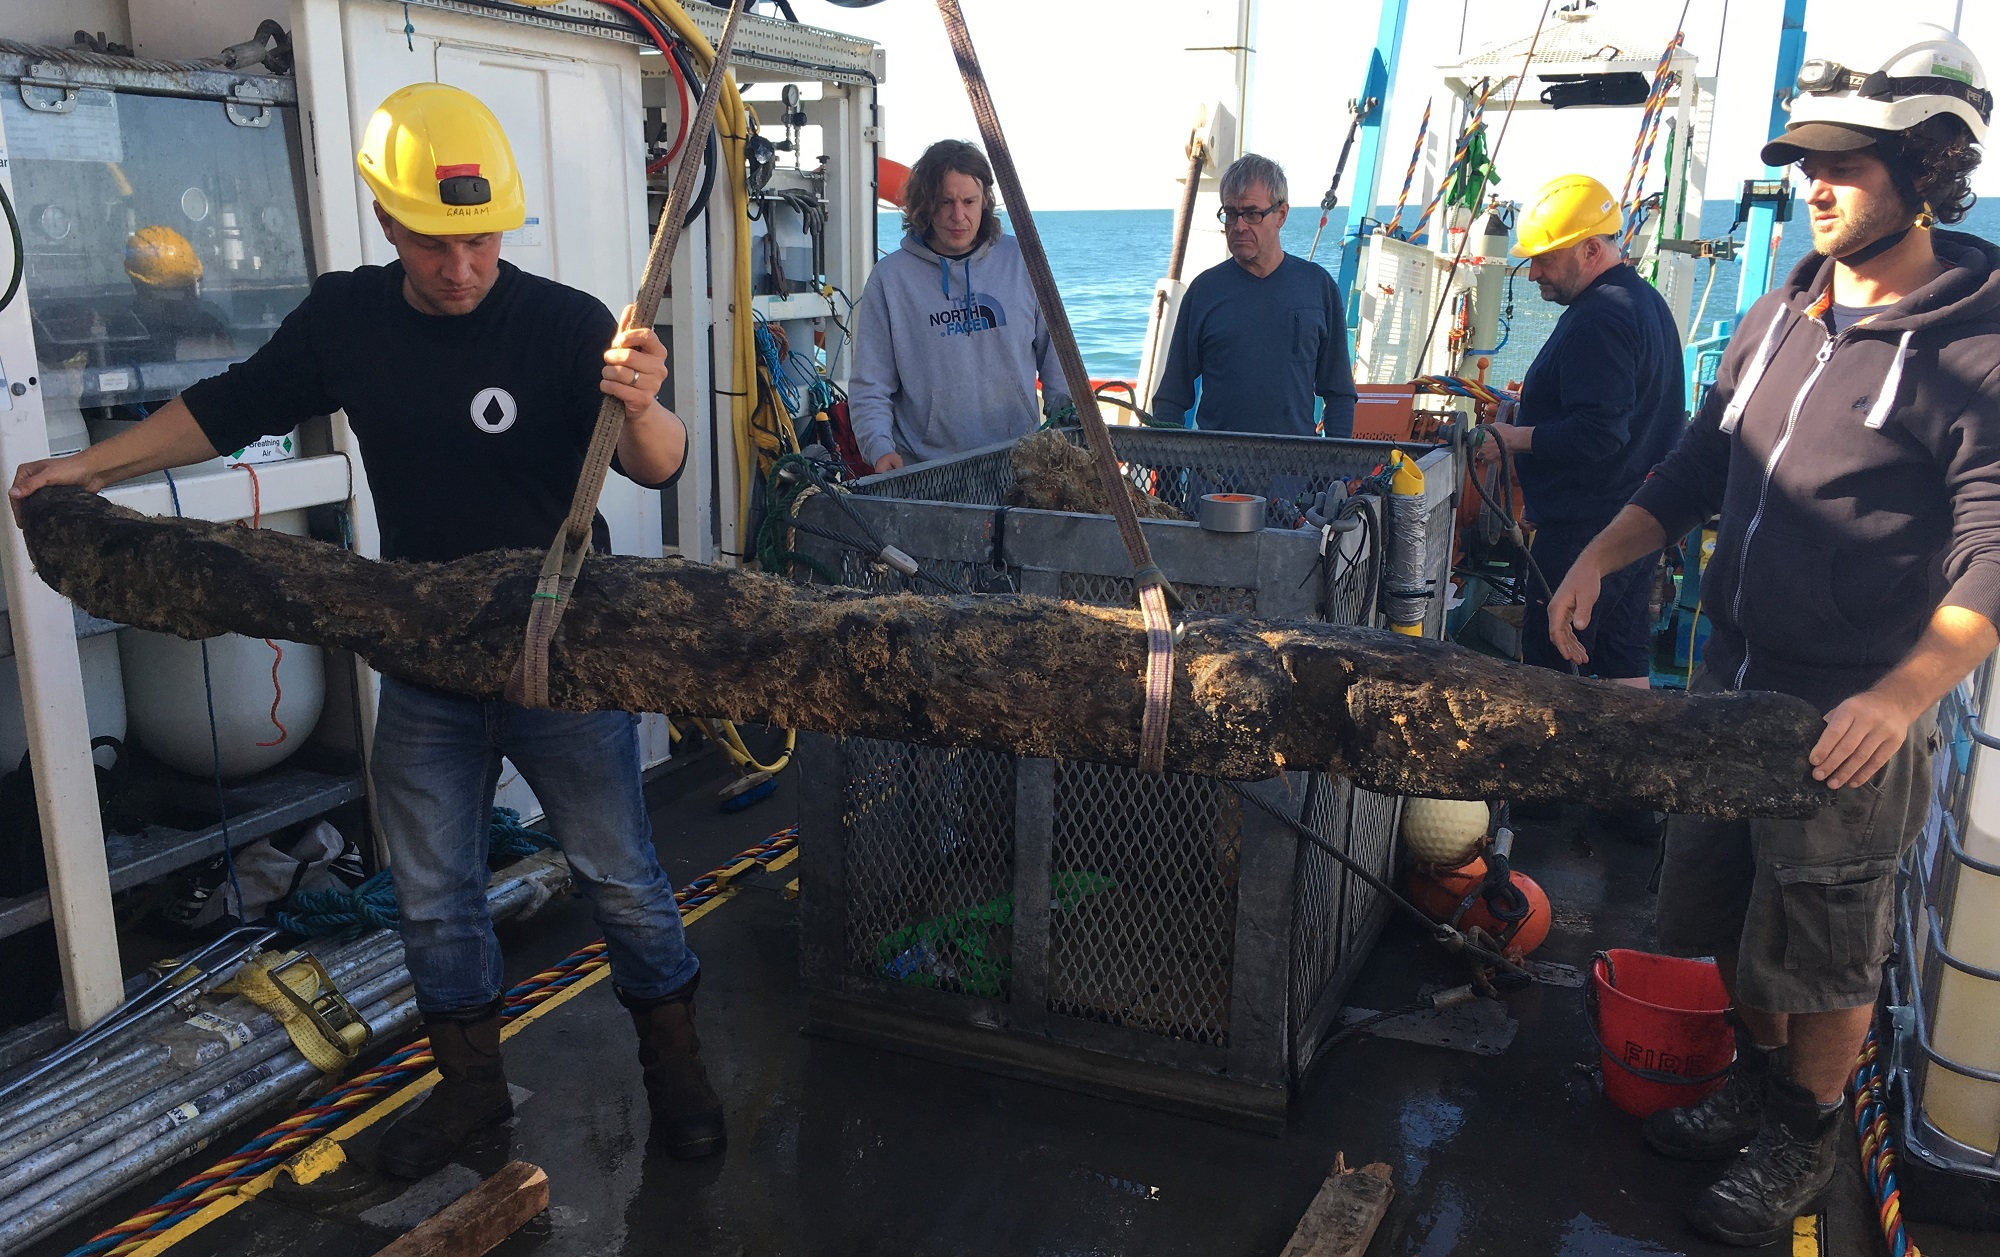 A large timber of the Rooswijk is lifted on board of the research vessel during the recent 2018 expedition (photo: #rooswijk1740/Martijn Manders)